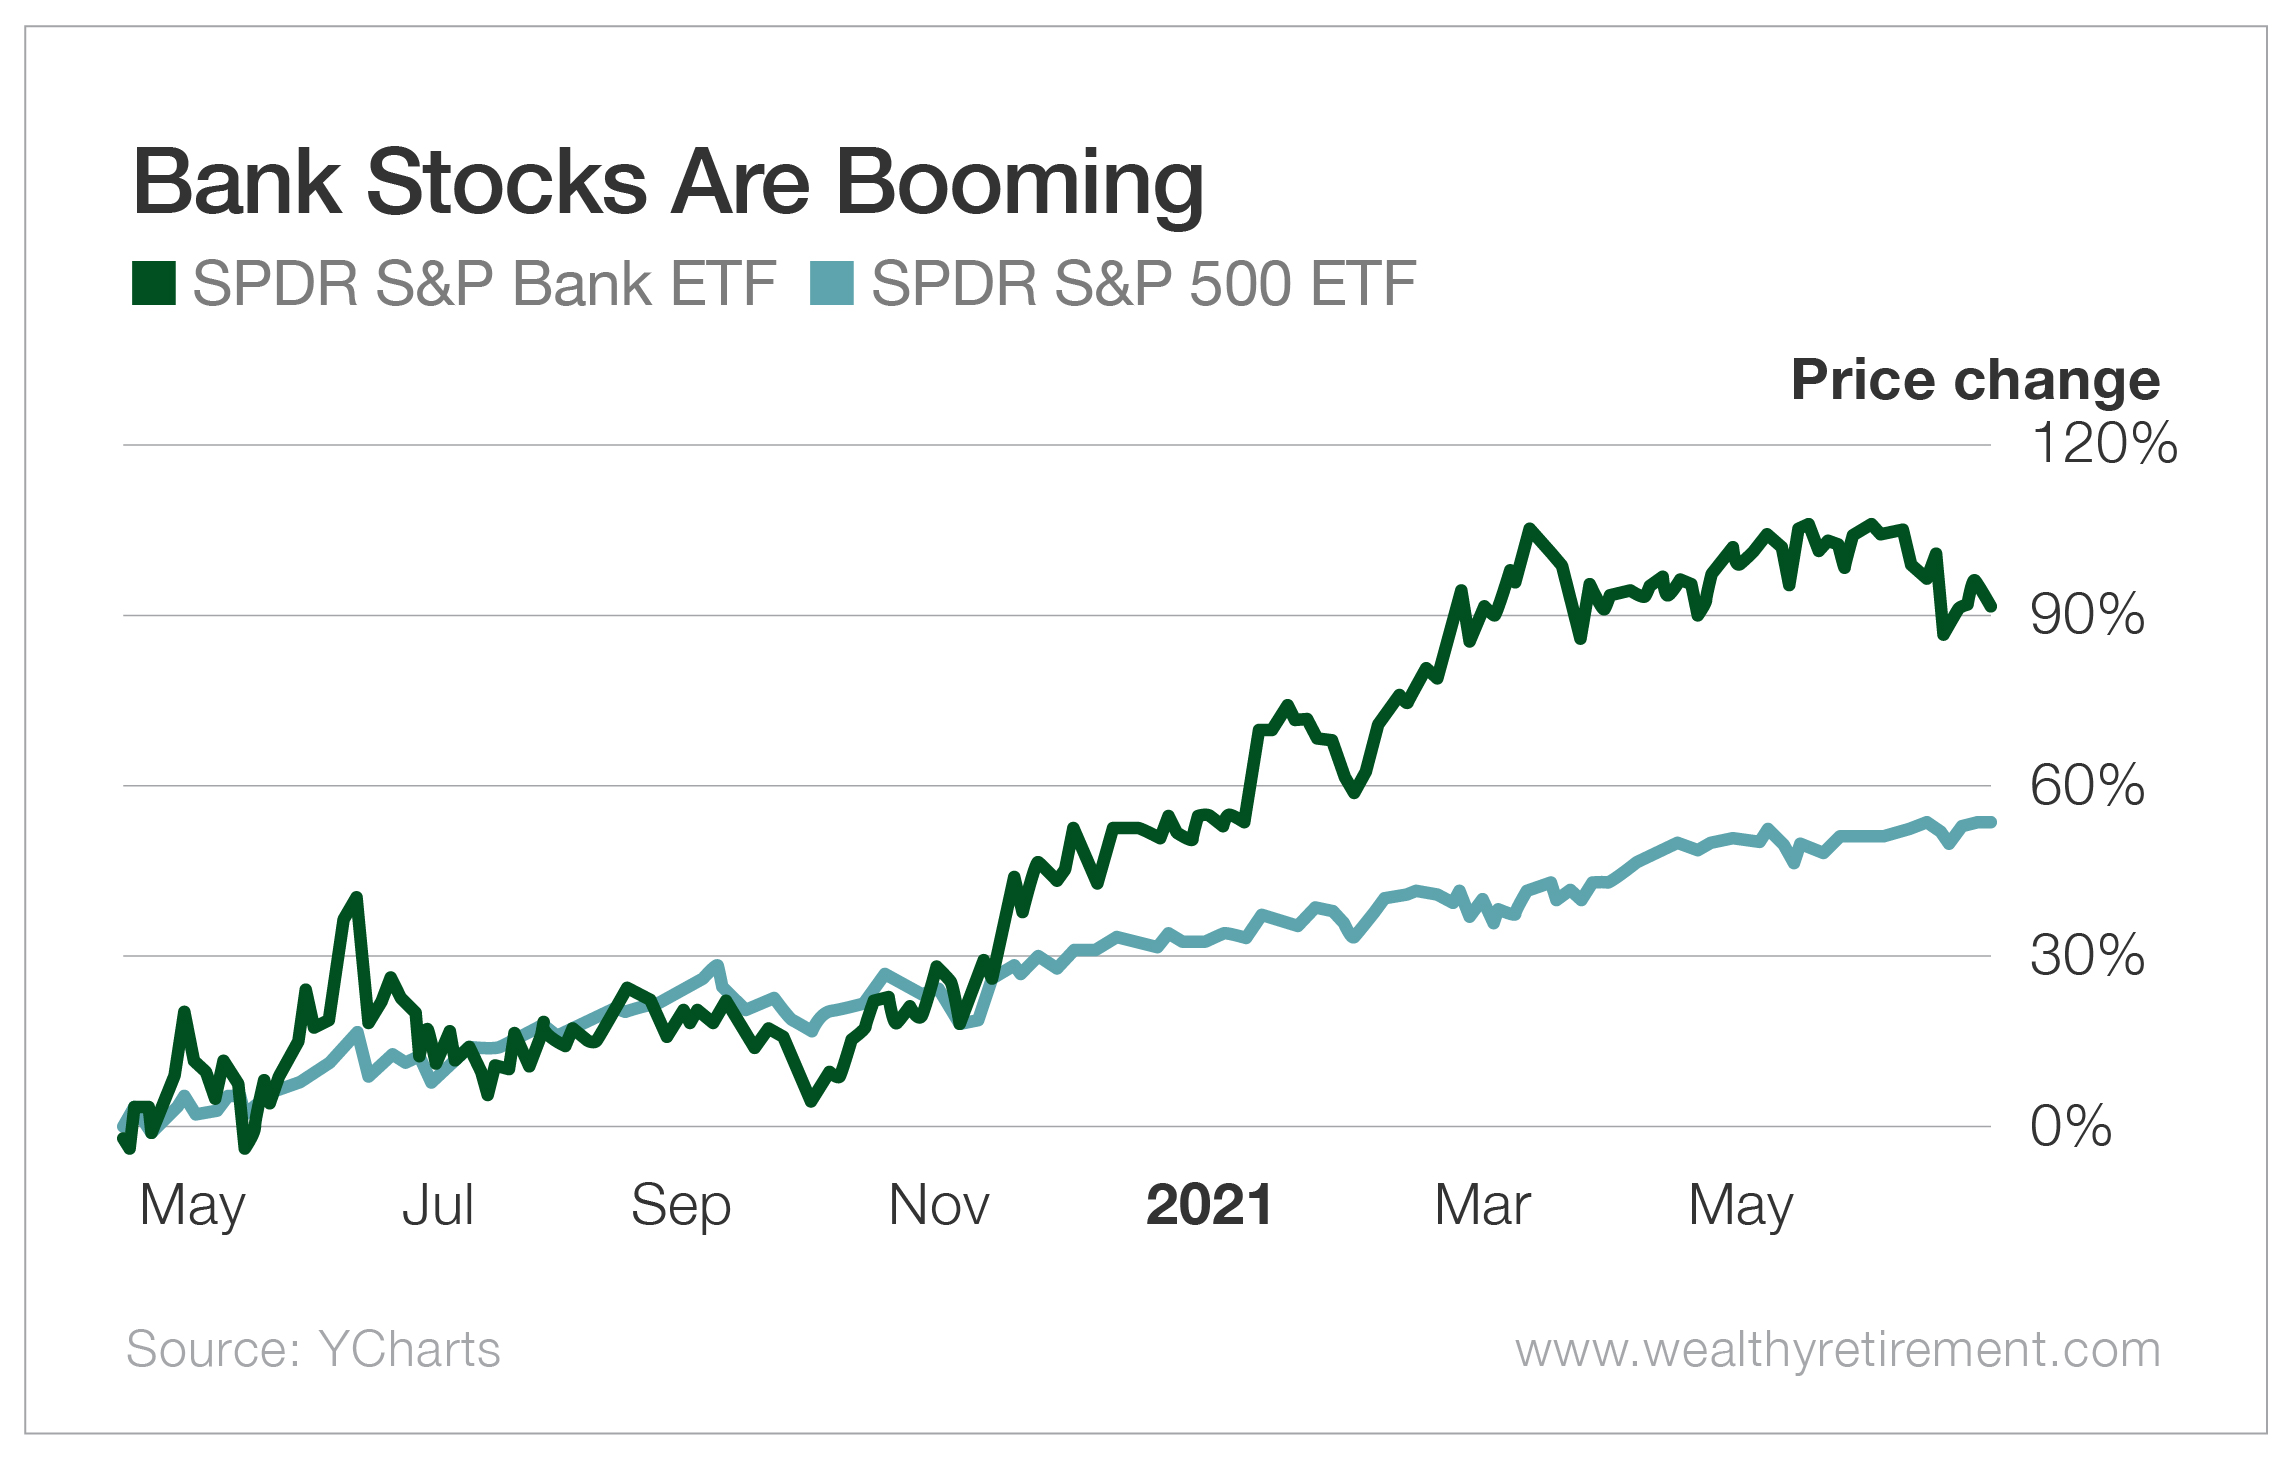 Bank Stocks Are Booming